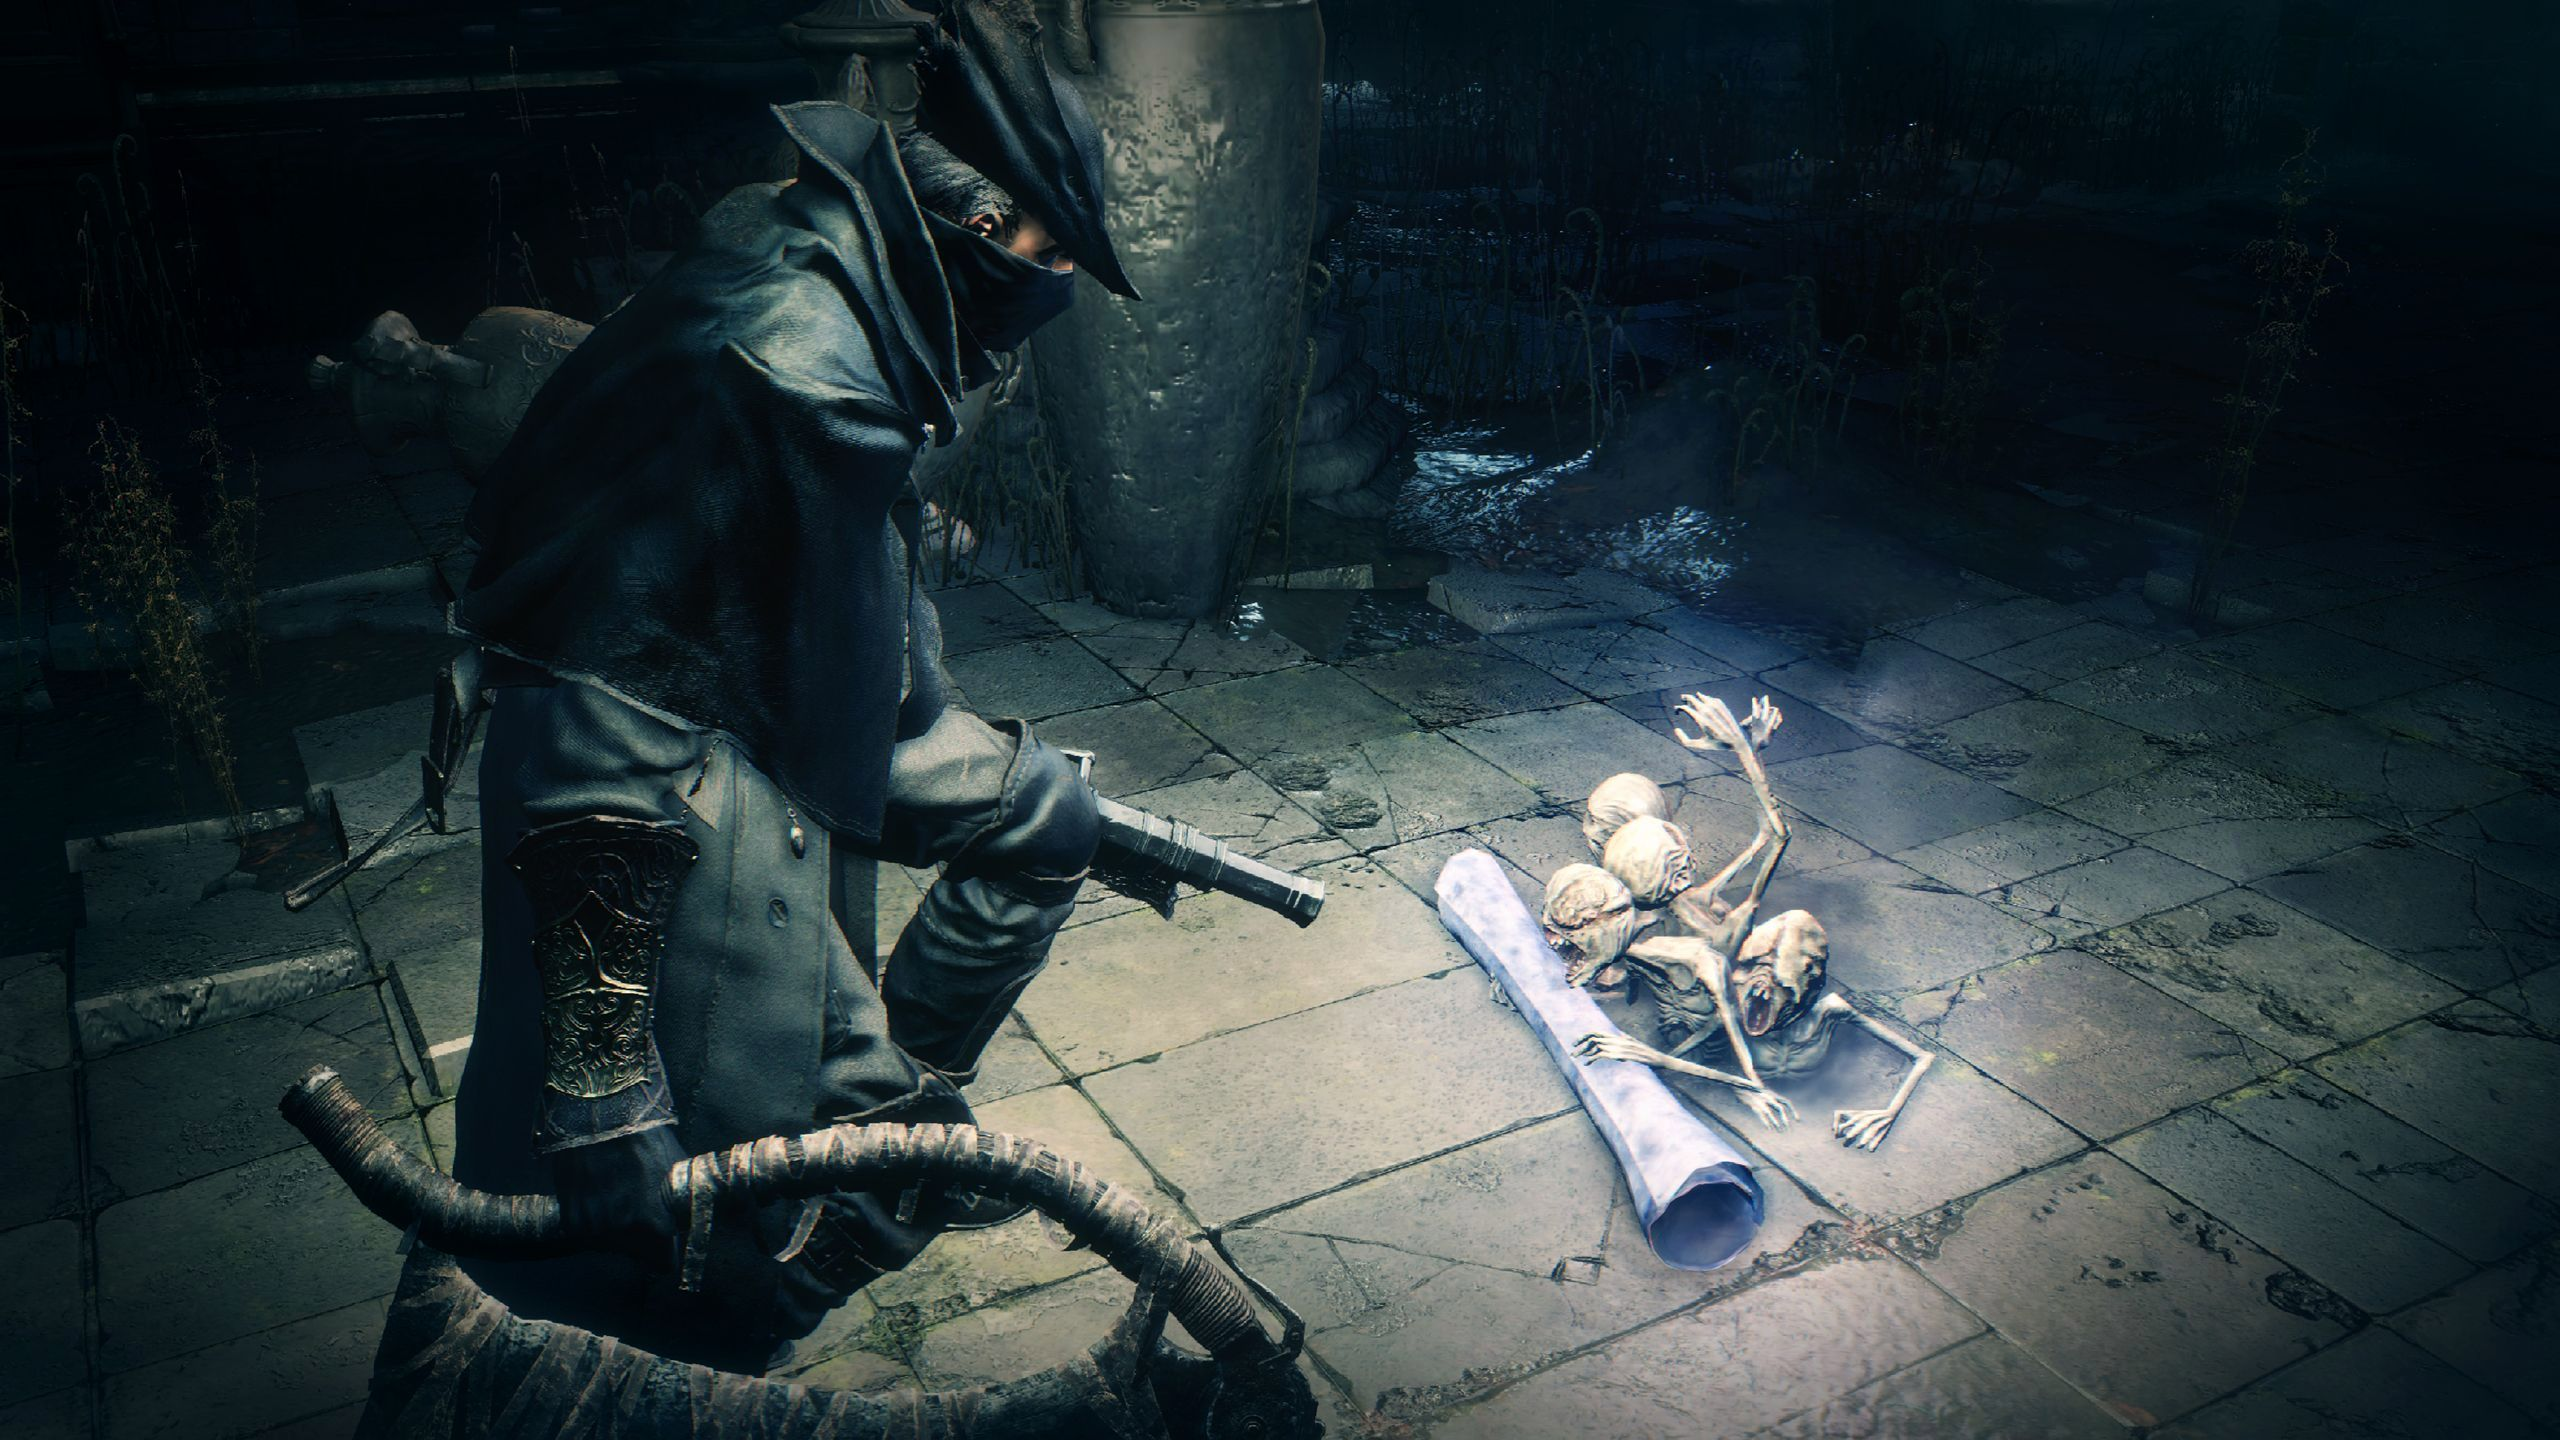 Director Hidetaka Miyazaki Says the Decision to Develop Bloodborne 2 is Not Up to Him